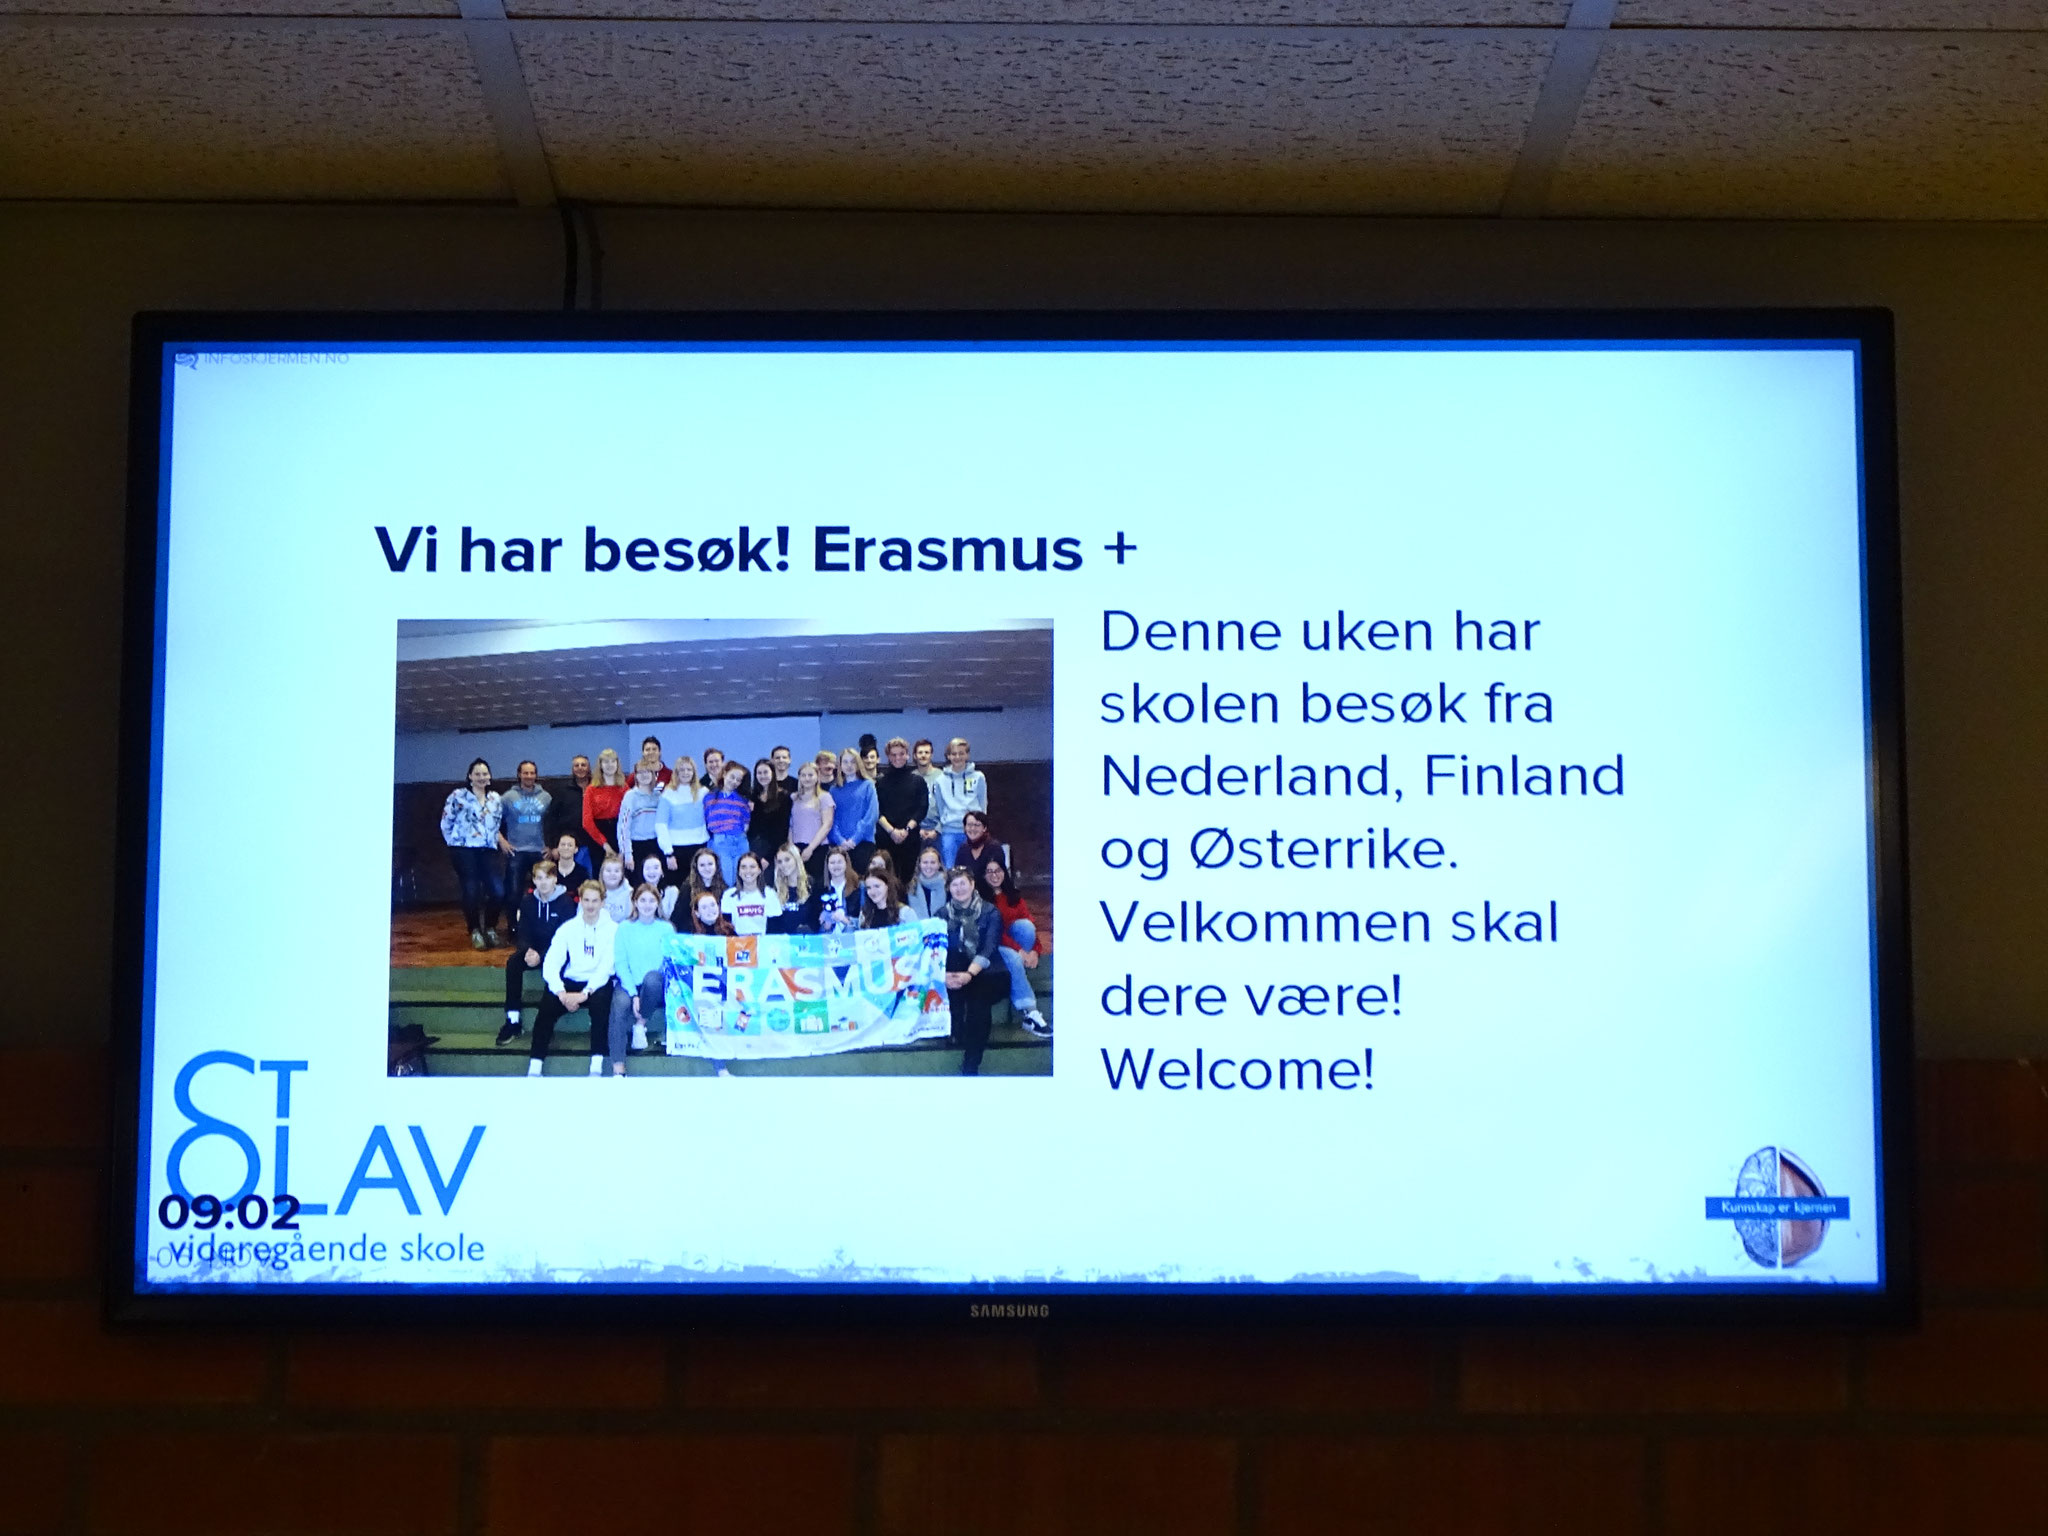 Erasmus news on screen in Norway 2018 (norwegian)